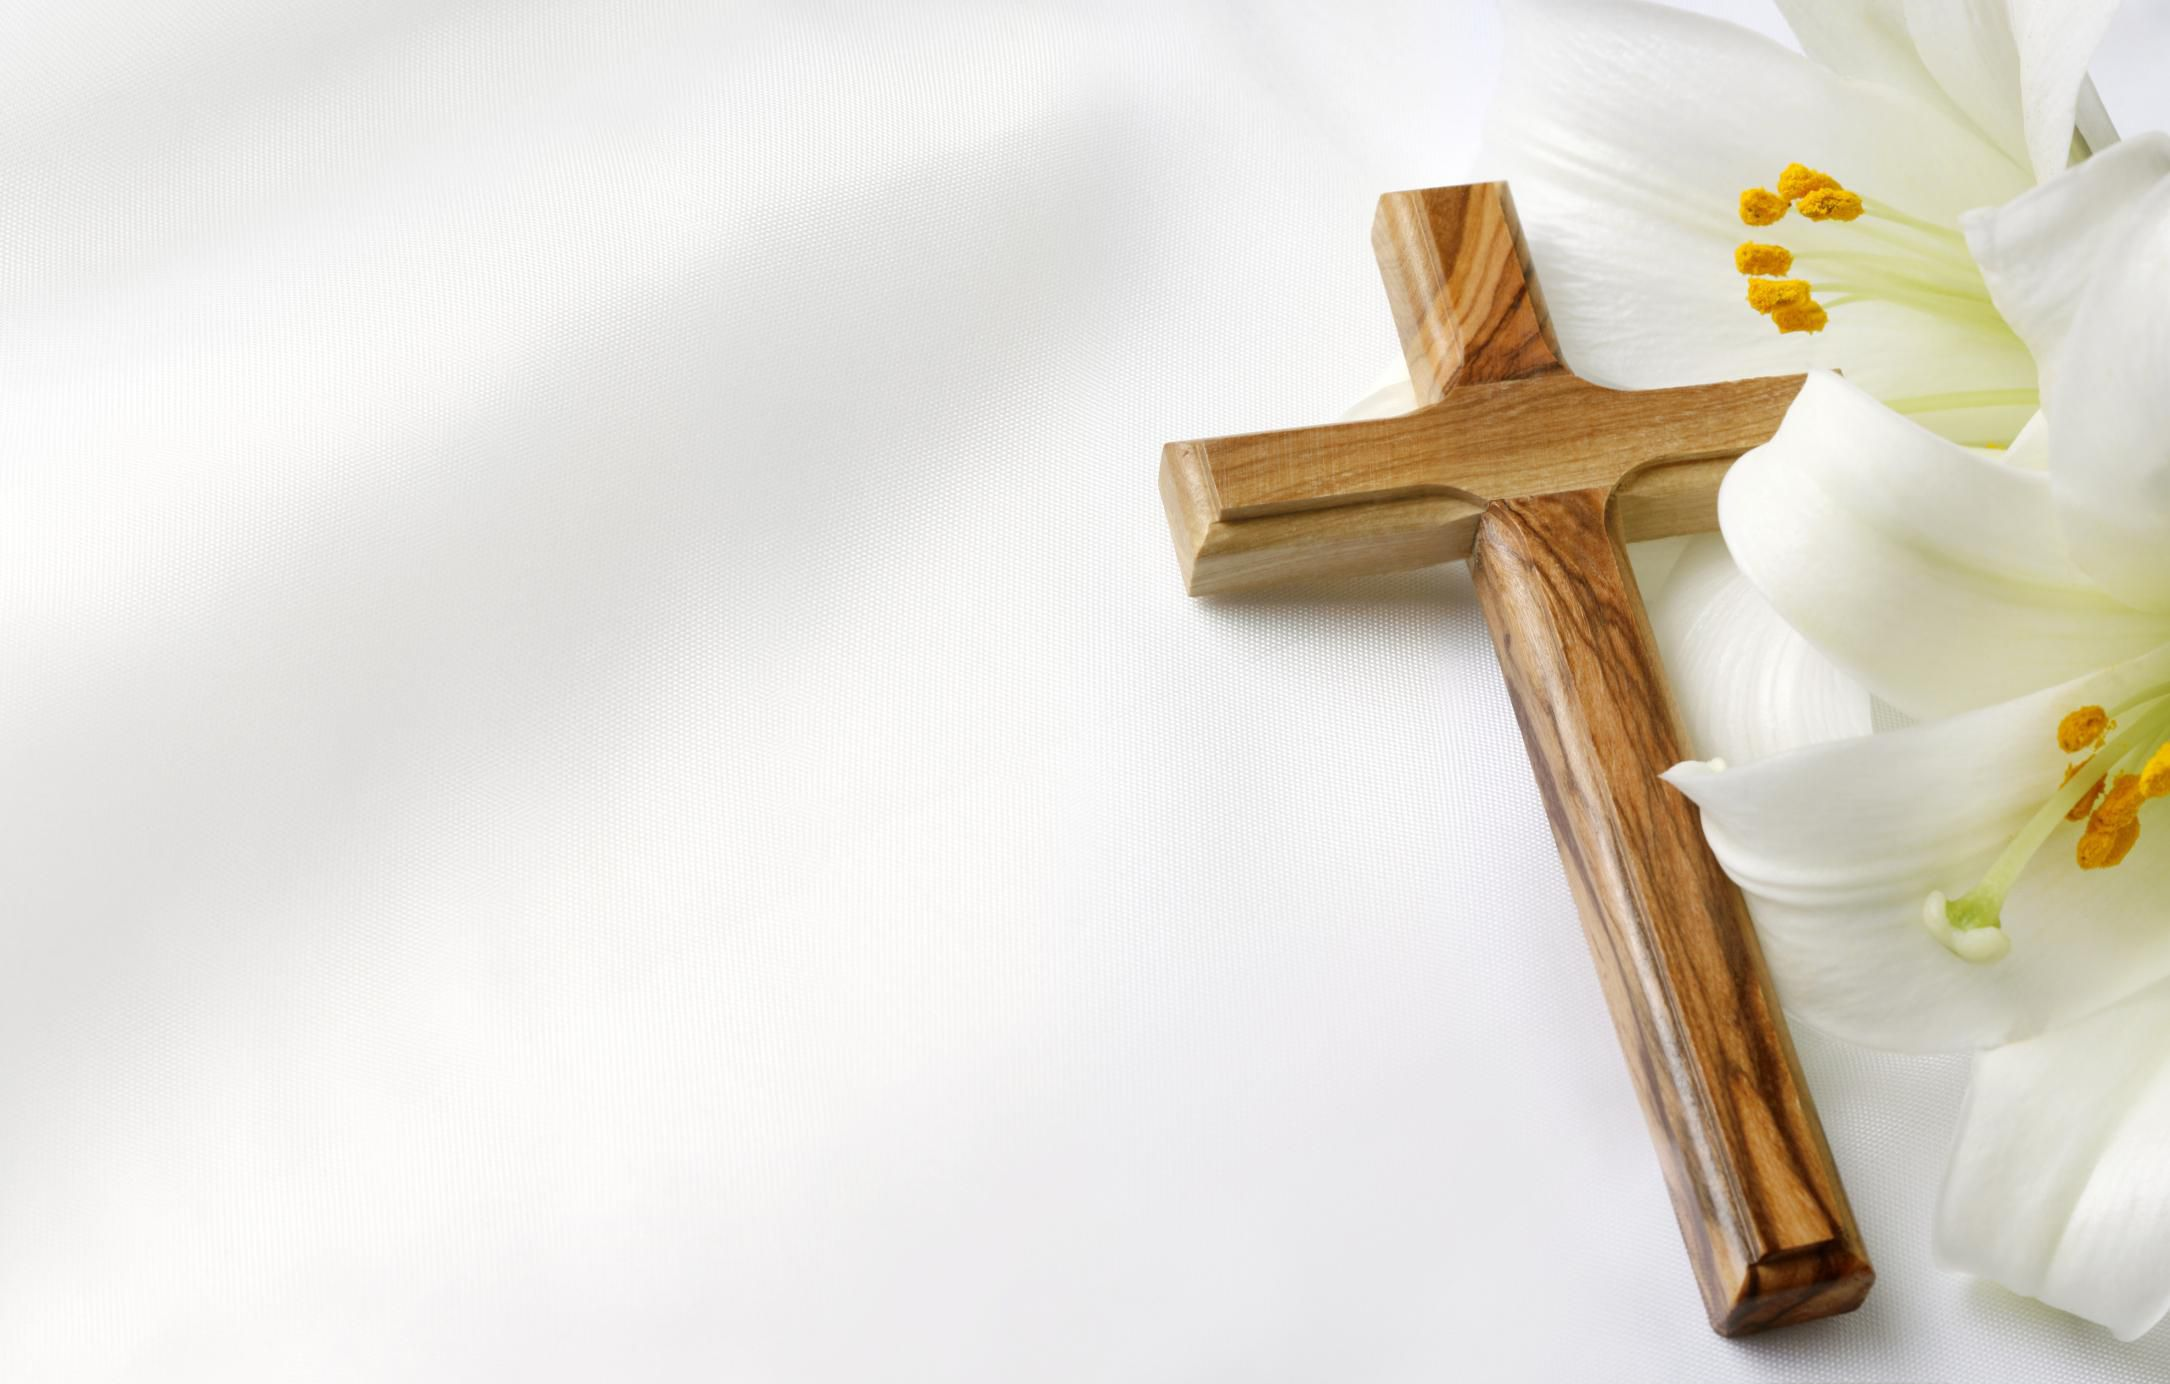 Easter celebrations origins and customs everything christian teens need to know about easter biocorpaavc